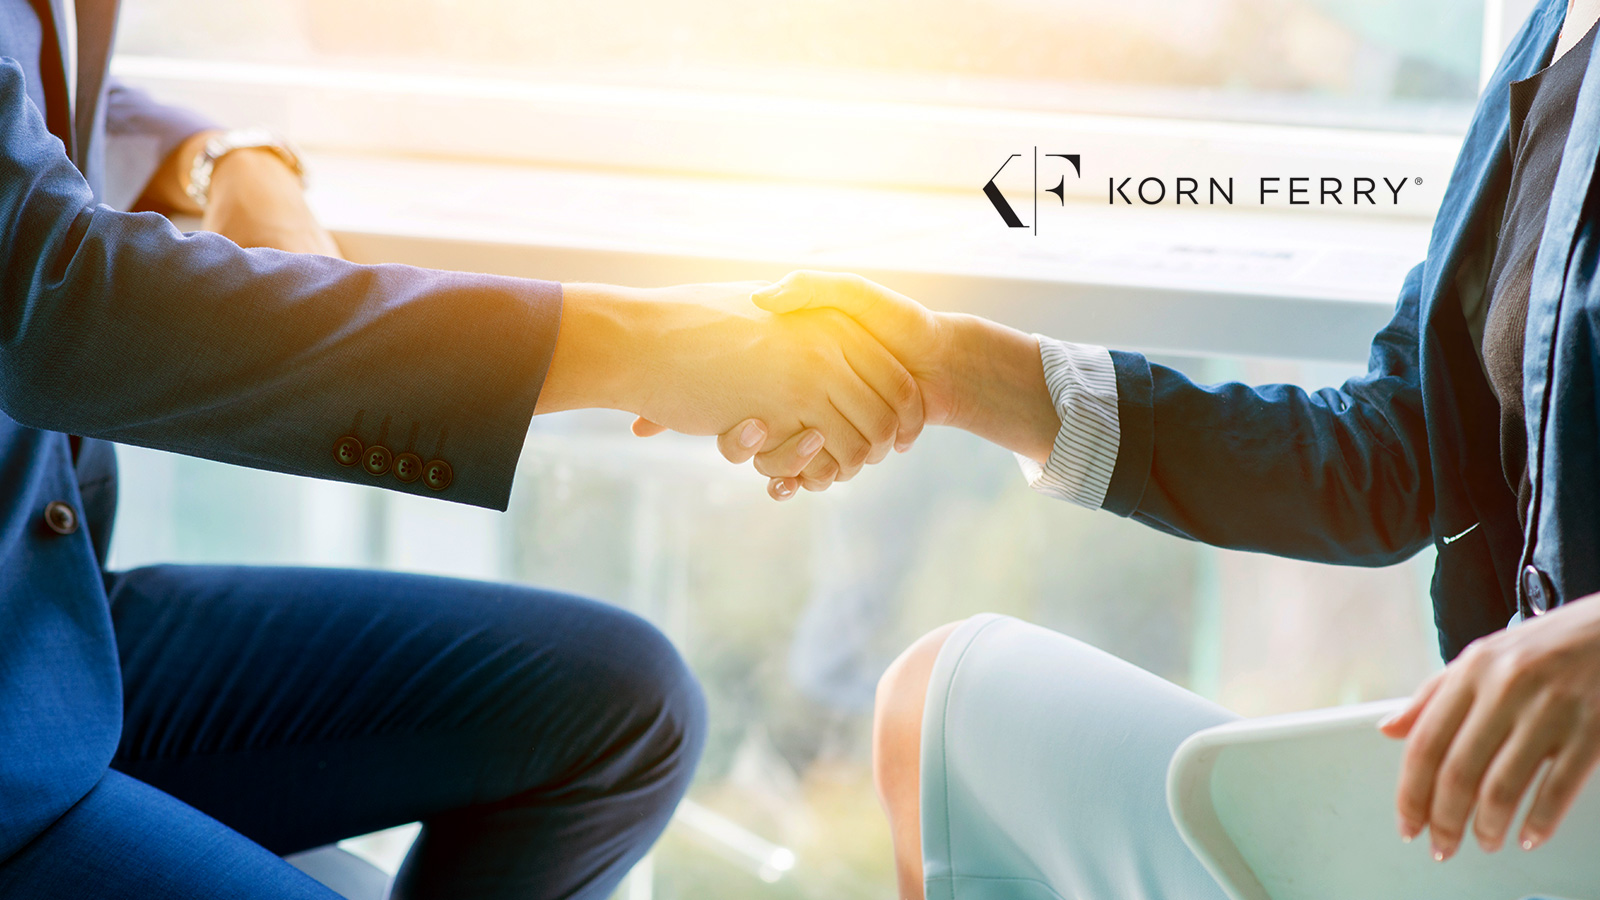 Tim Manasseh Joins Korn Ferry as Senior Client Partner in London